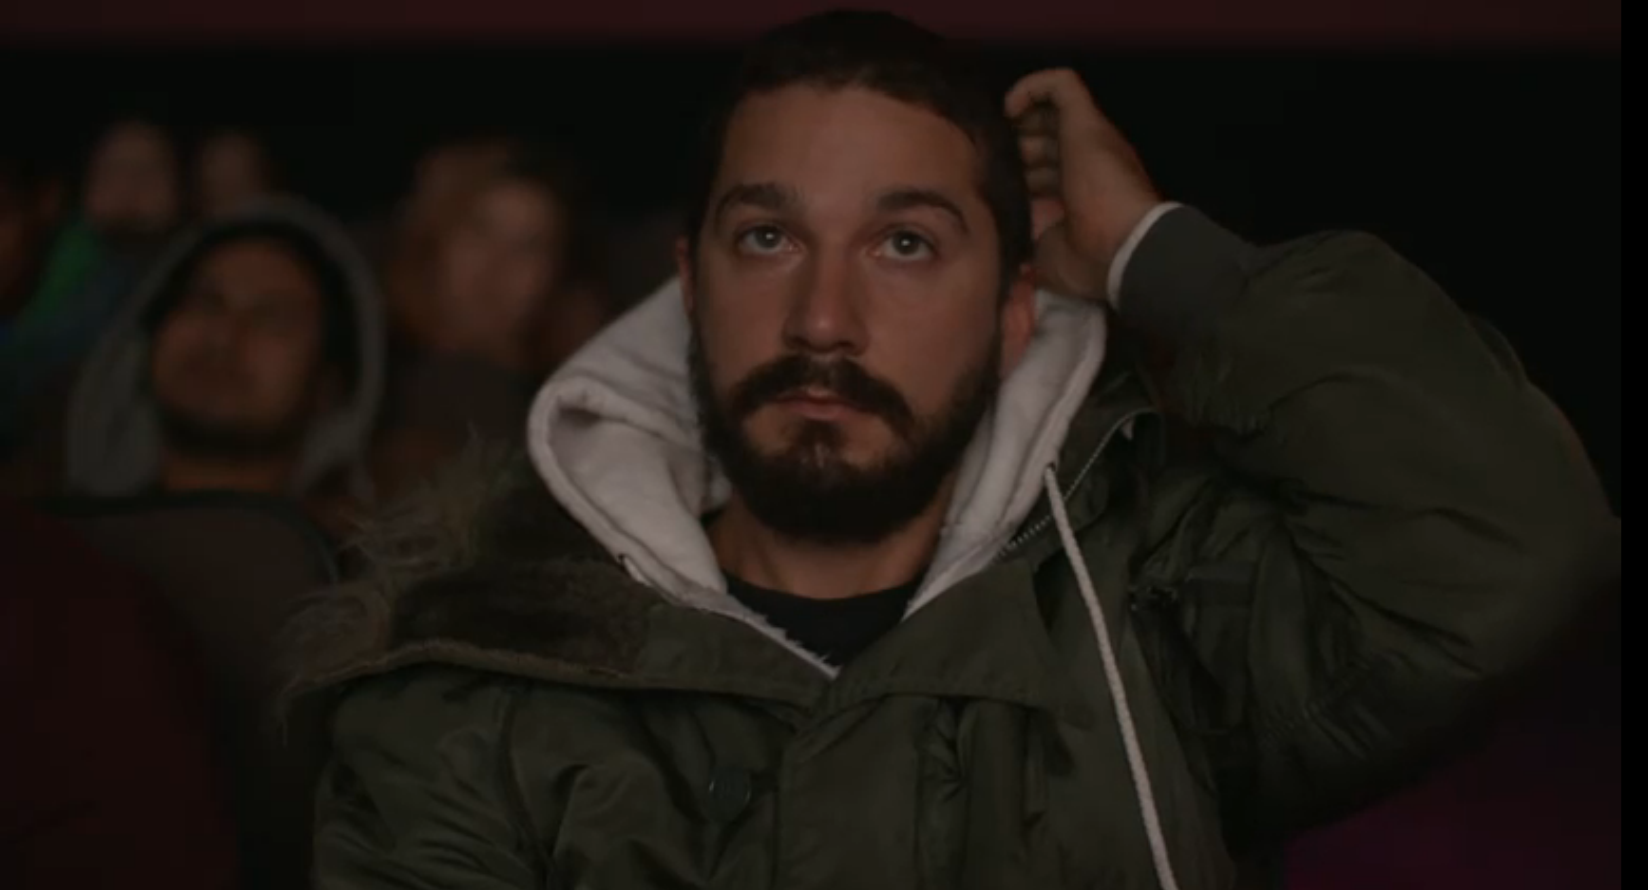 Shia_LaBeouf_im_Kino_Screenshot